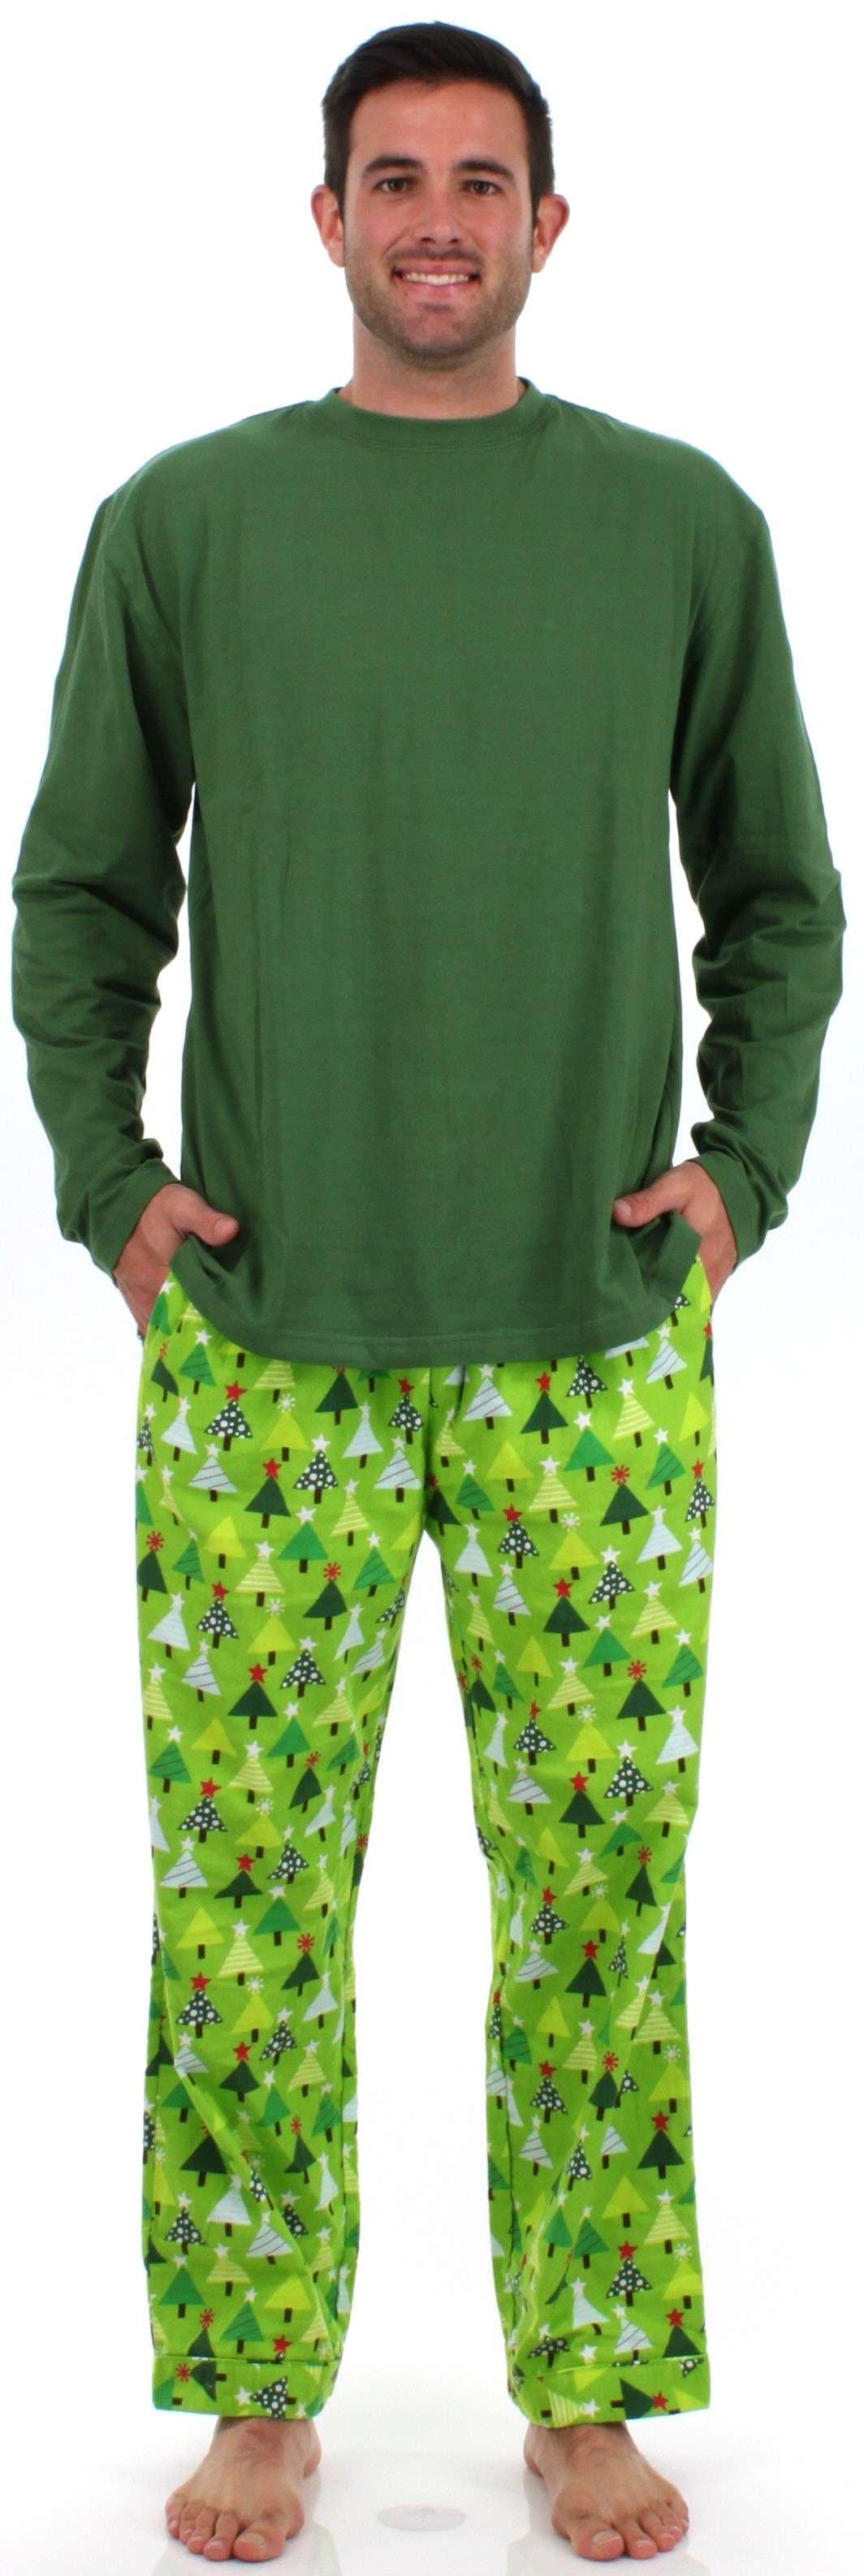 Mens Christmas Pajamas.Christmas Tree Green Flannel Pj S Pajama Party Mens